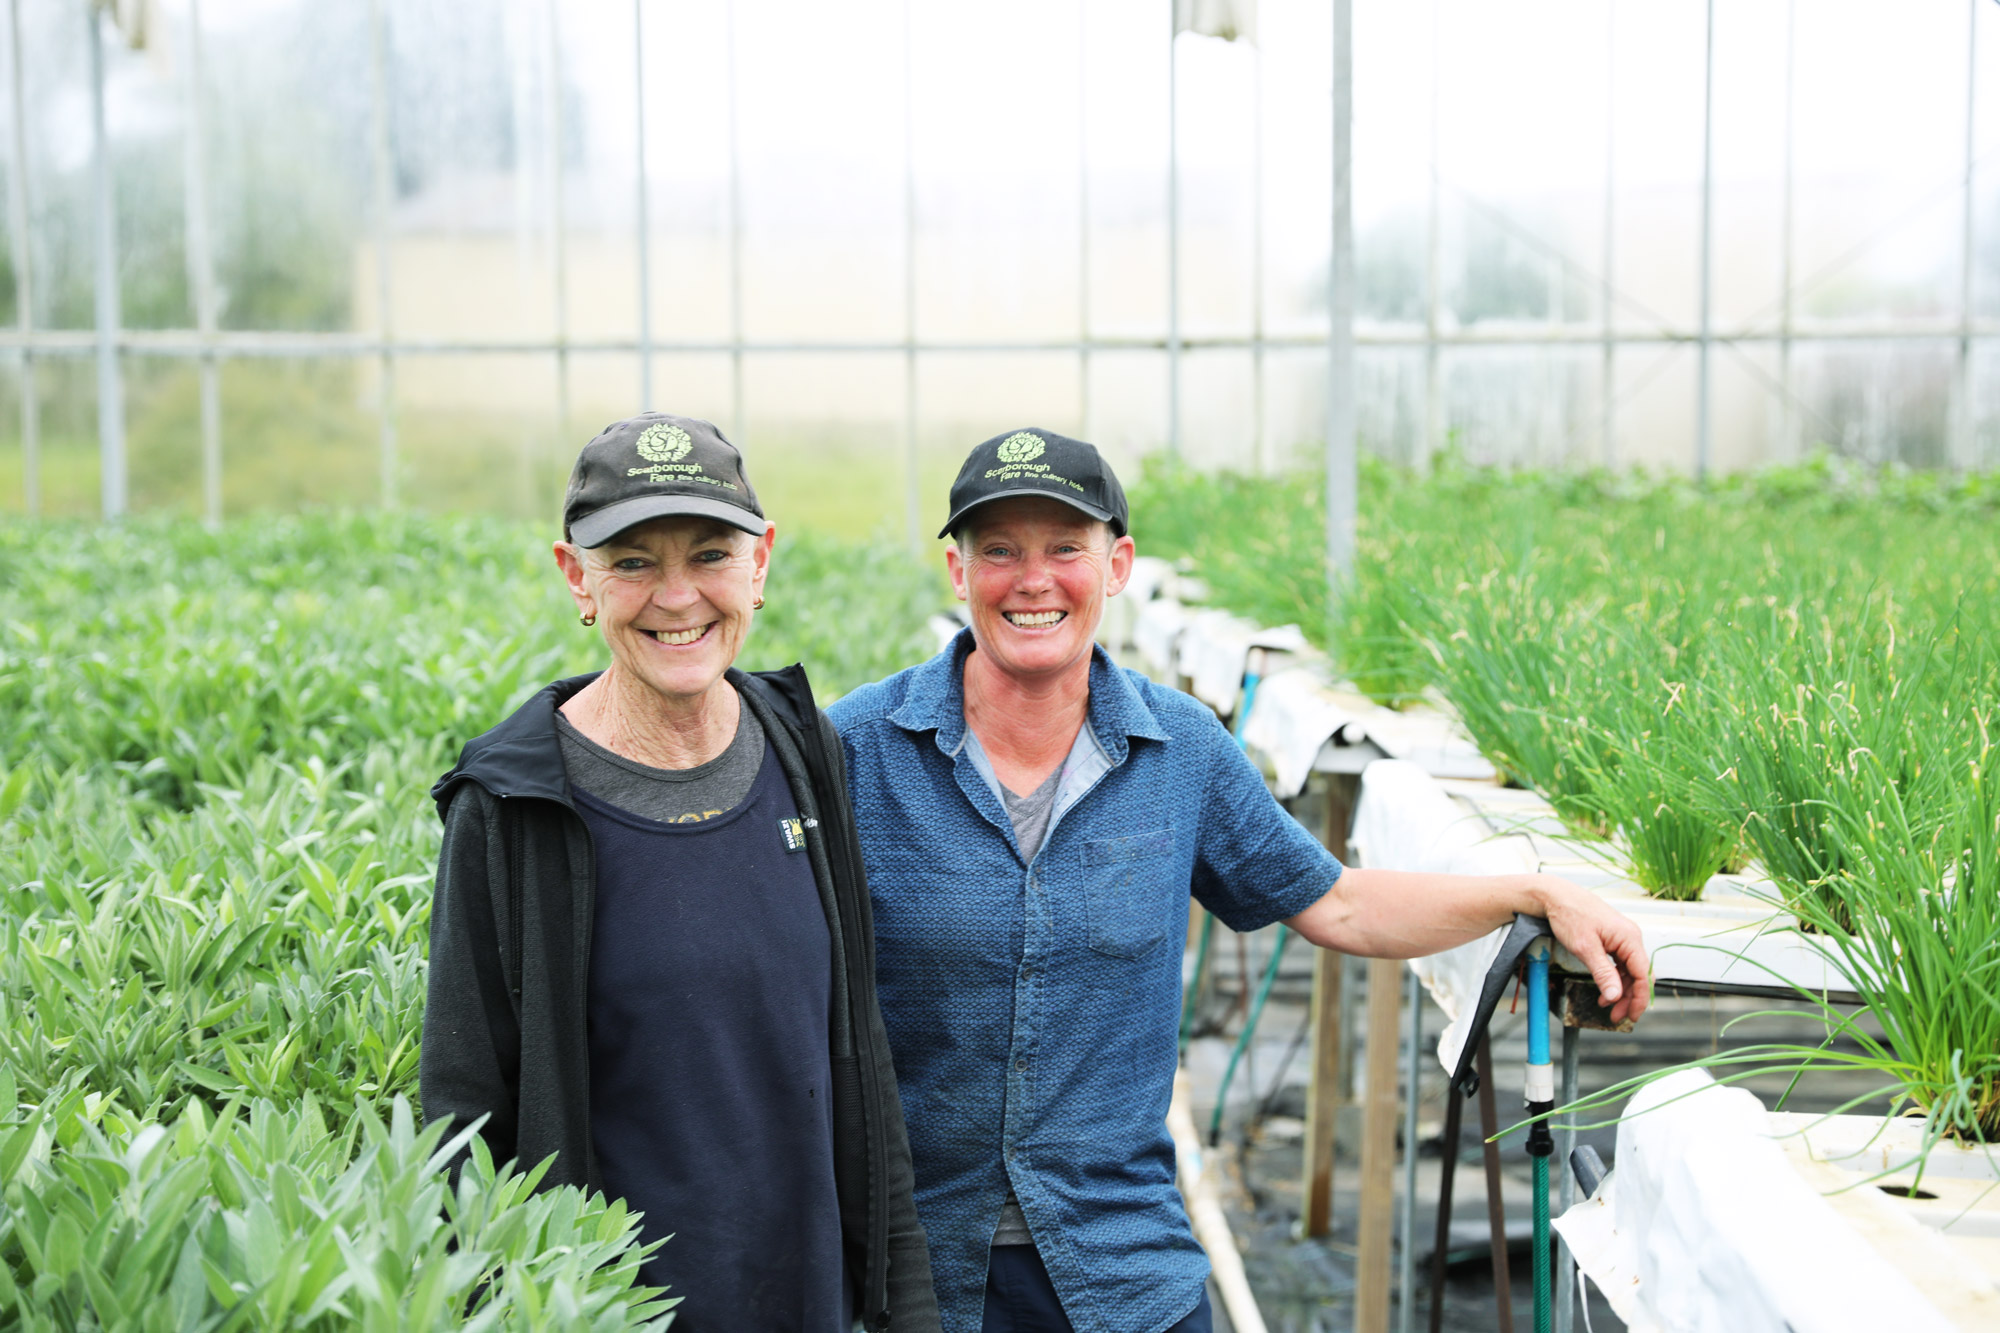 Led by people with a passion for what they do - Scarborough Fare Herbs is home to Pam Maurice and Jeanette Rea. They live and breathe the ethos of natural, sustainable quality that Scarborough Fare has become known for.